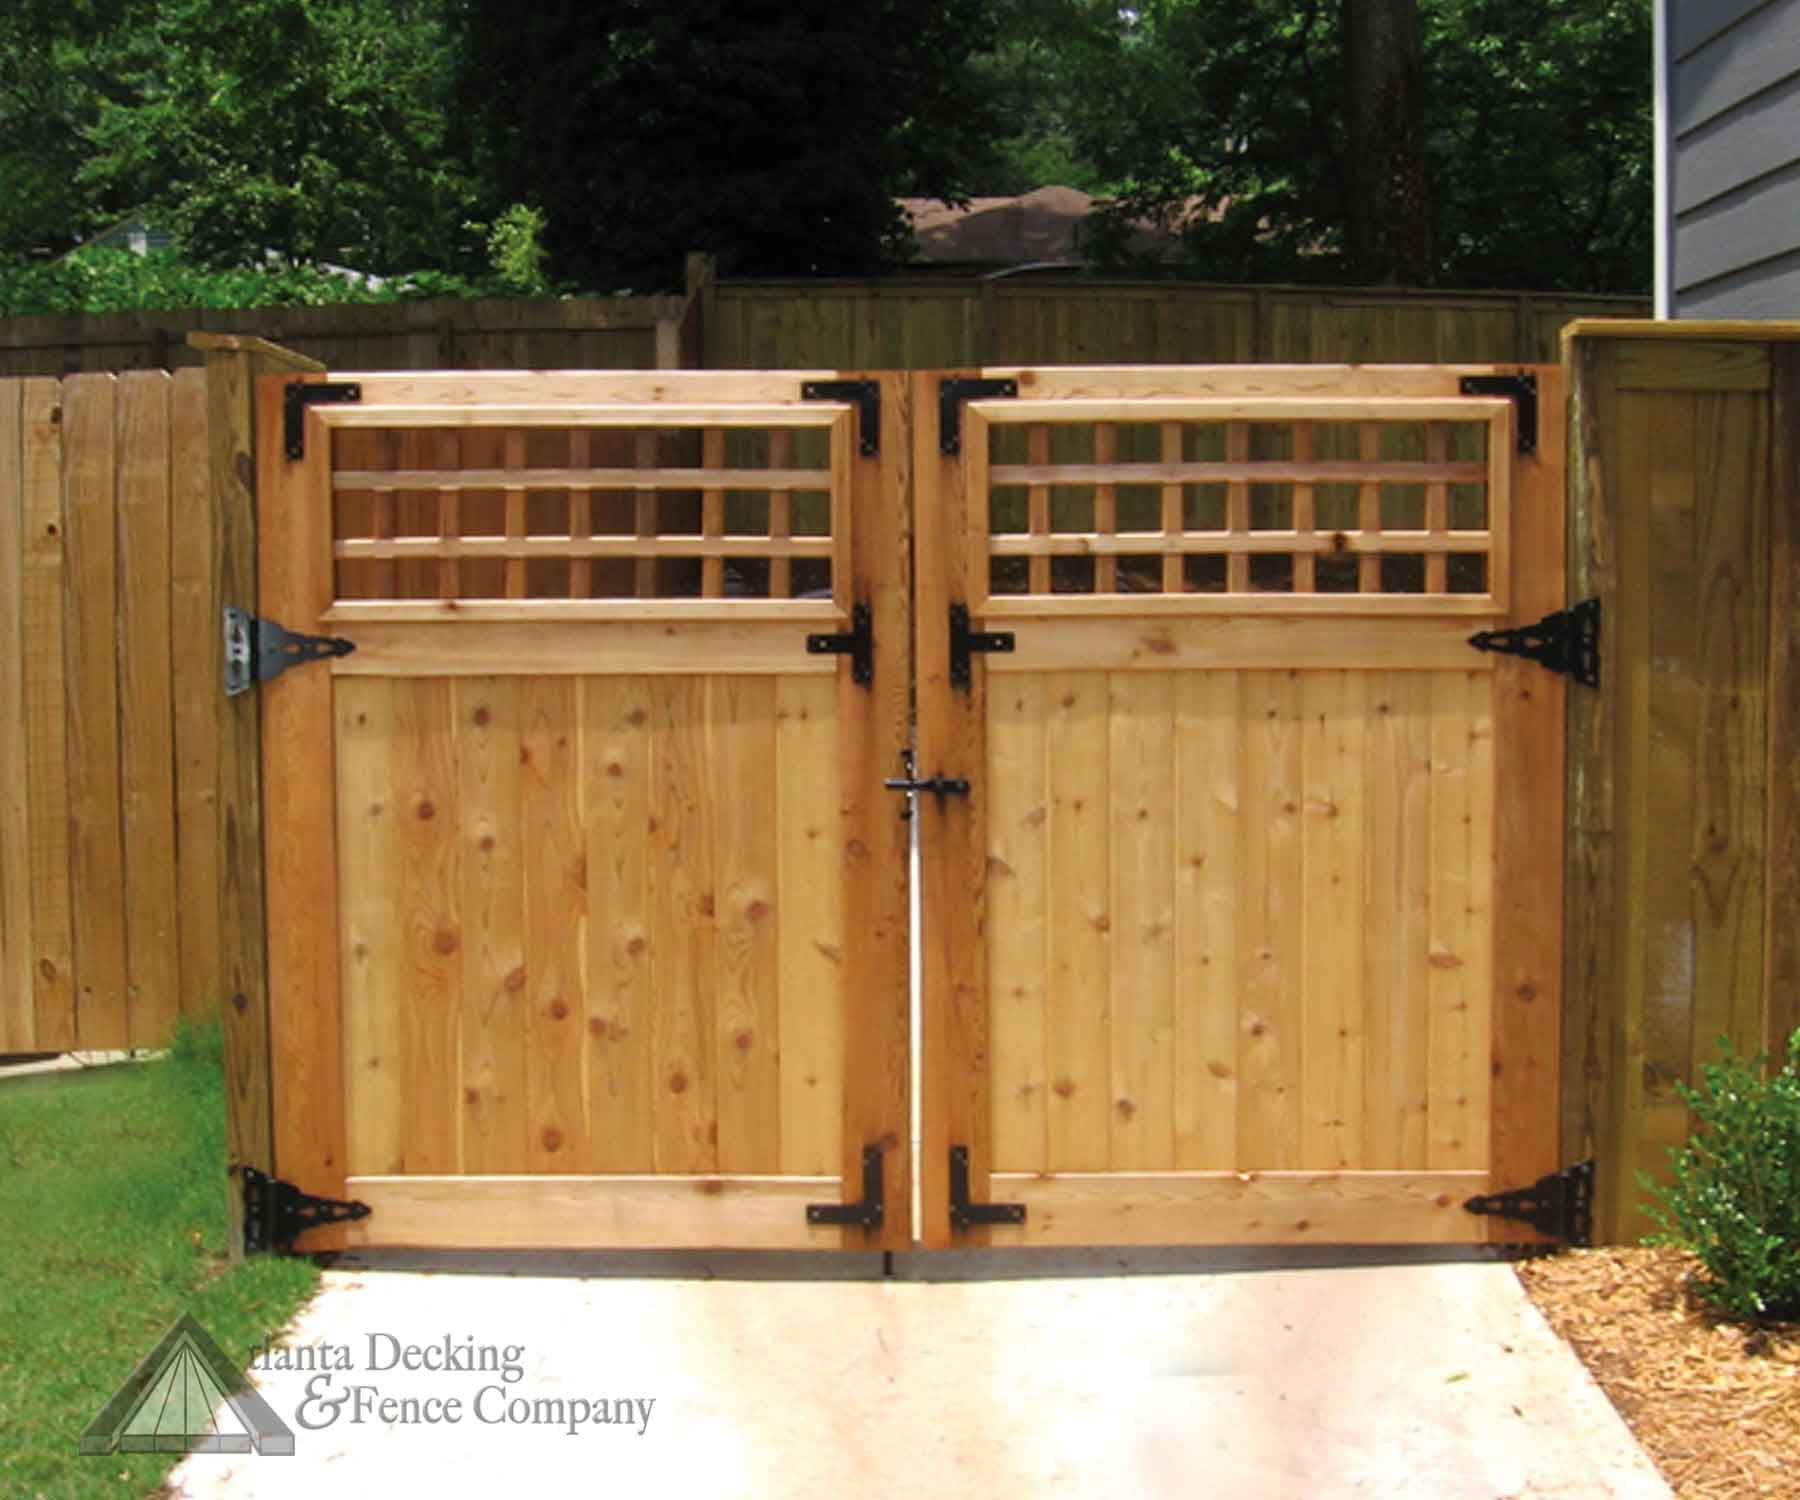 Pictures of Custom double gate from Atlanta Decking and Fence ...